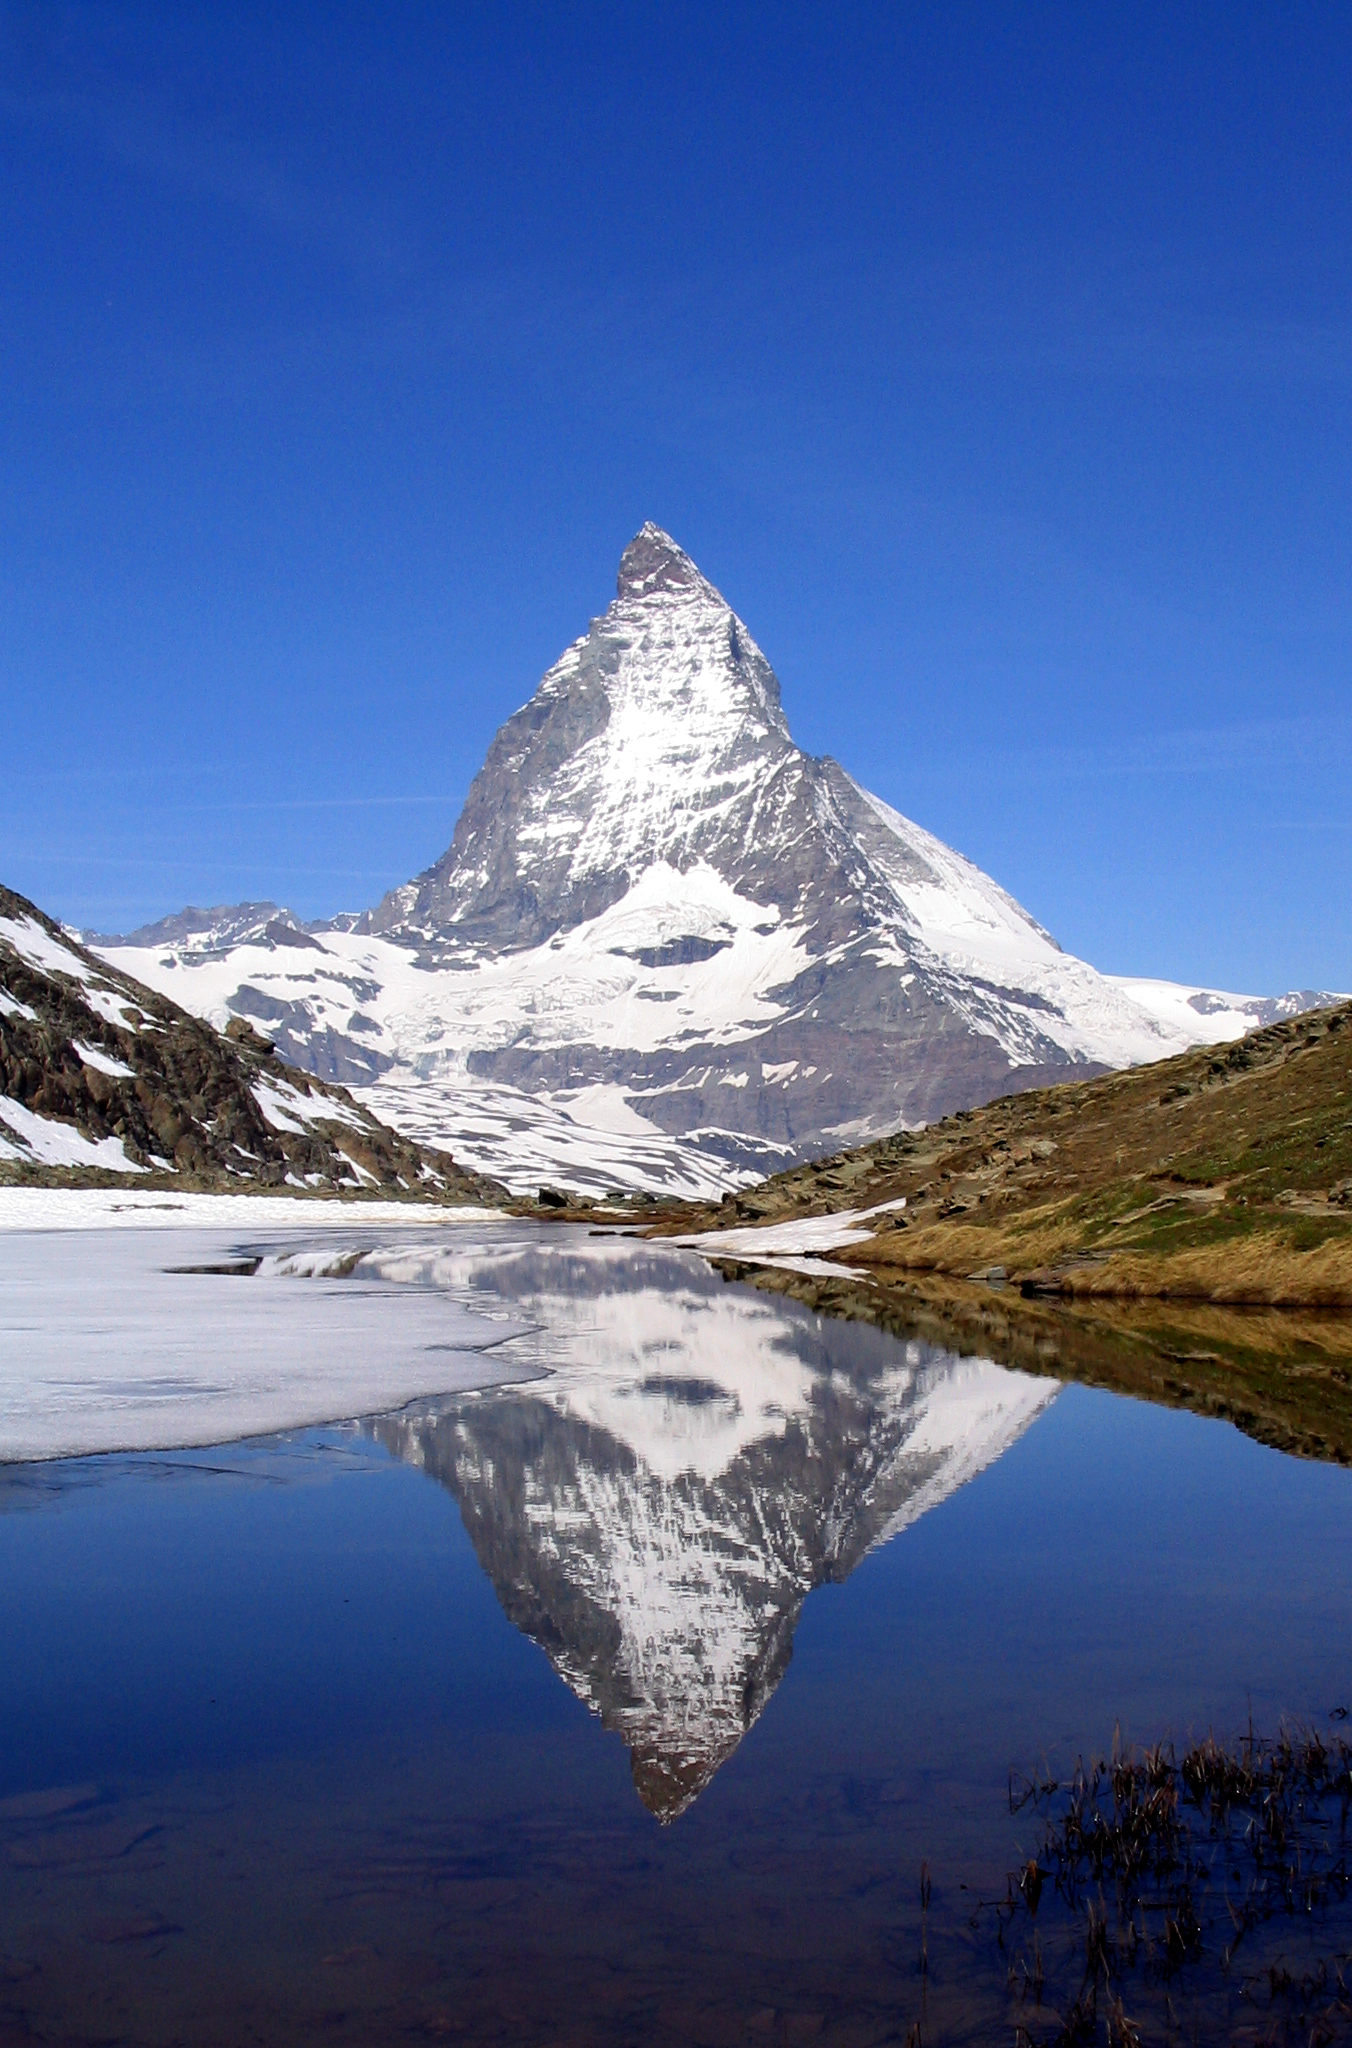 https://upload.wikimedia.org/wikipedia/commons/4/4f/Matterhorn_Riffelsee_2005-06-11.jpg